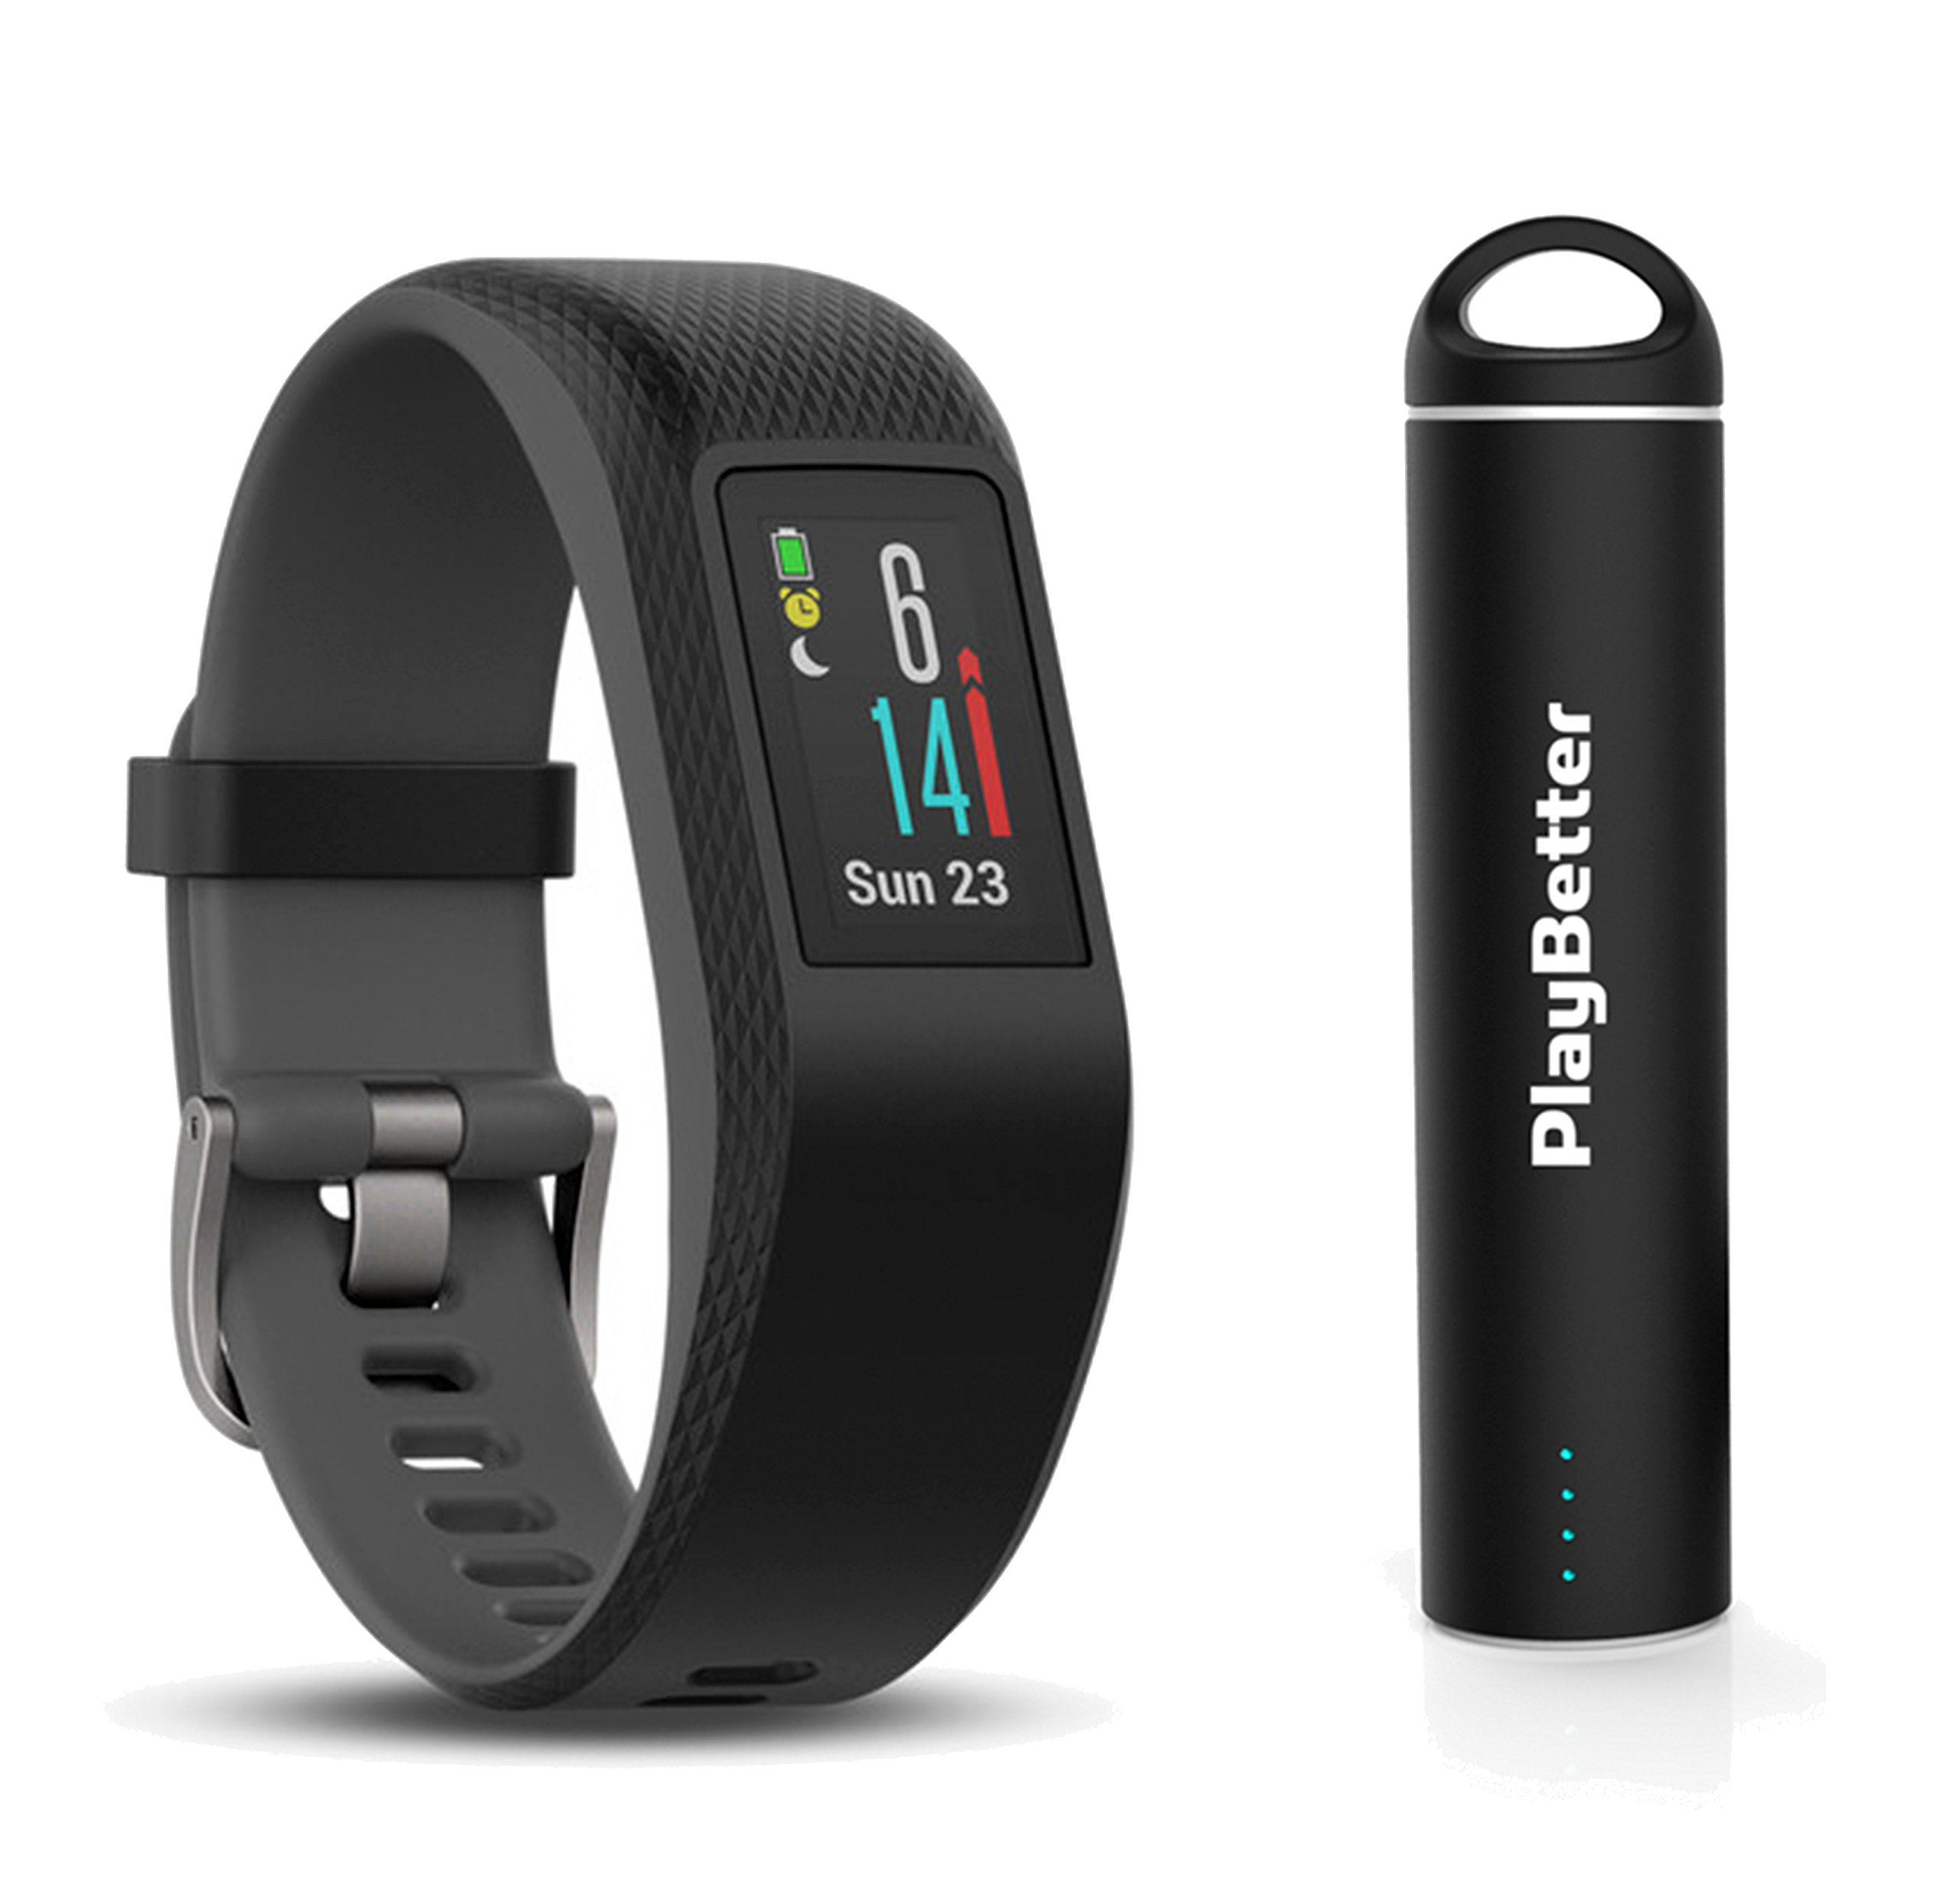 Garmin vivosport (Slate, Small/Medium) Bundle with PlayBetter Portable Power Bank (2200mAh) | On-Wrist Heart Rate, 24/7 Activity Tracker, Color Display | GPS Fitness Band